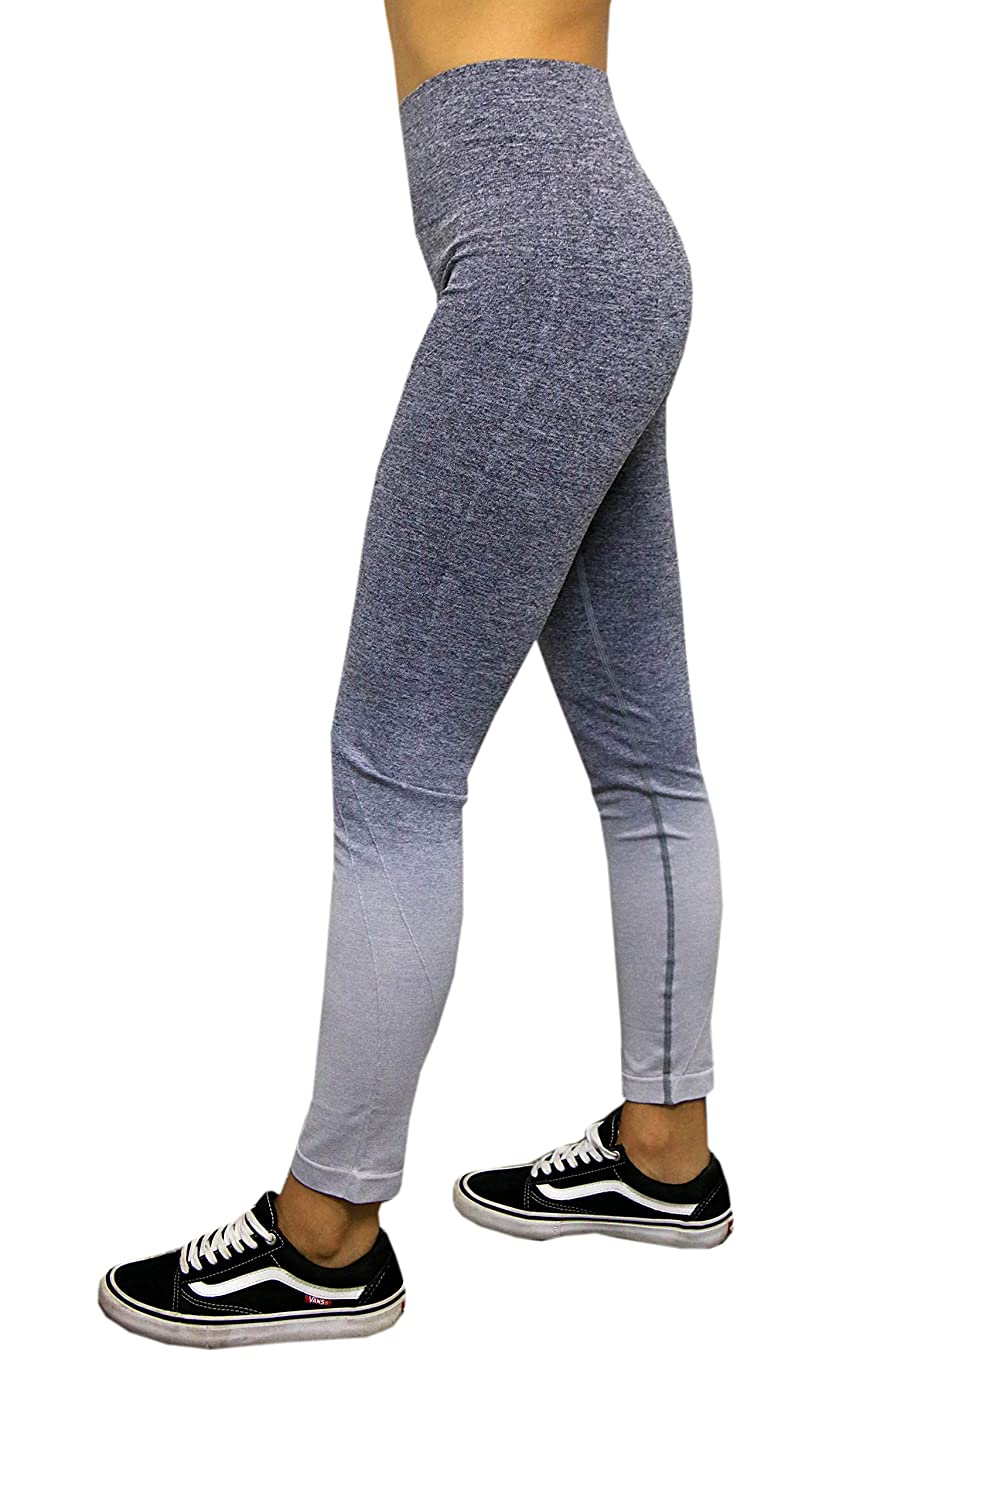 Embrace Womens Fitness Leggings Soft Elastic Spandex Wicking Material for Walking Yoga Running Workouts